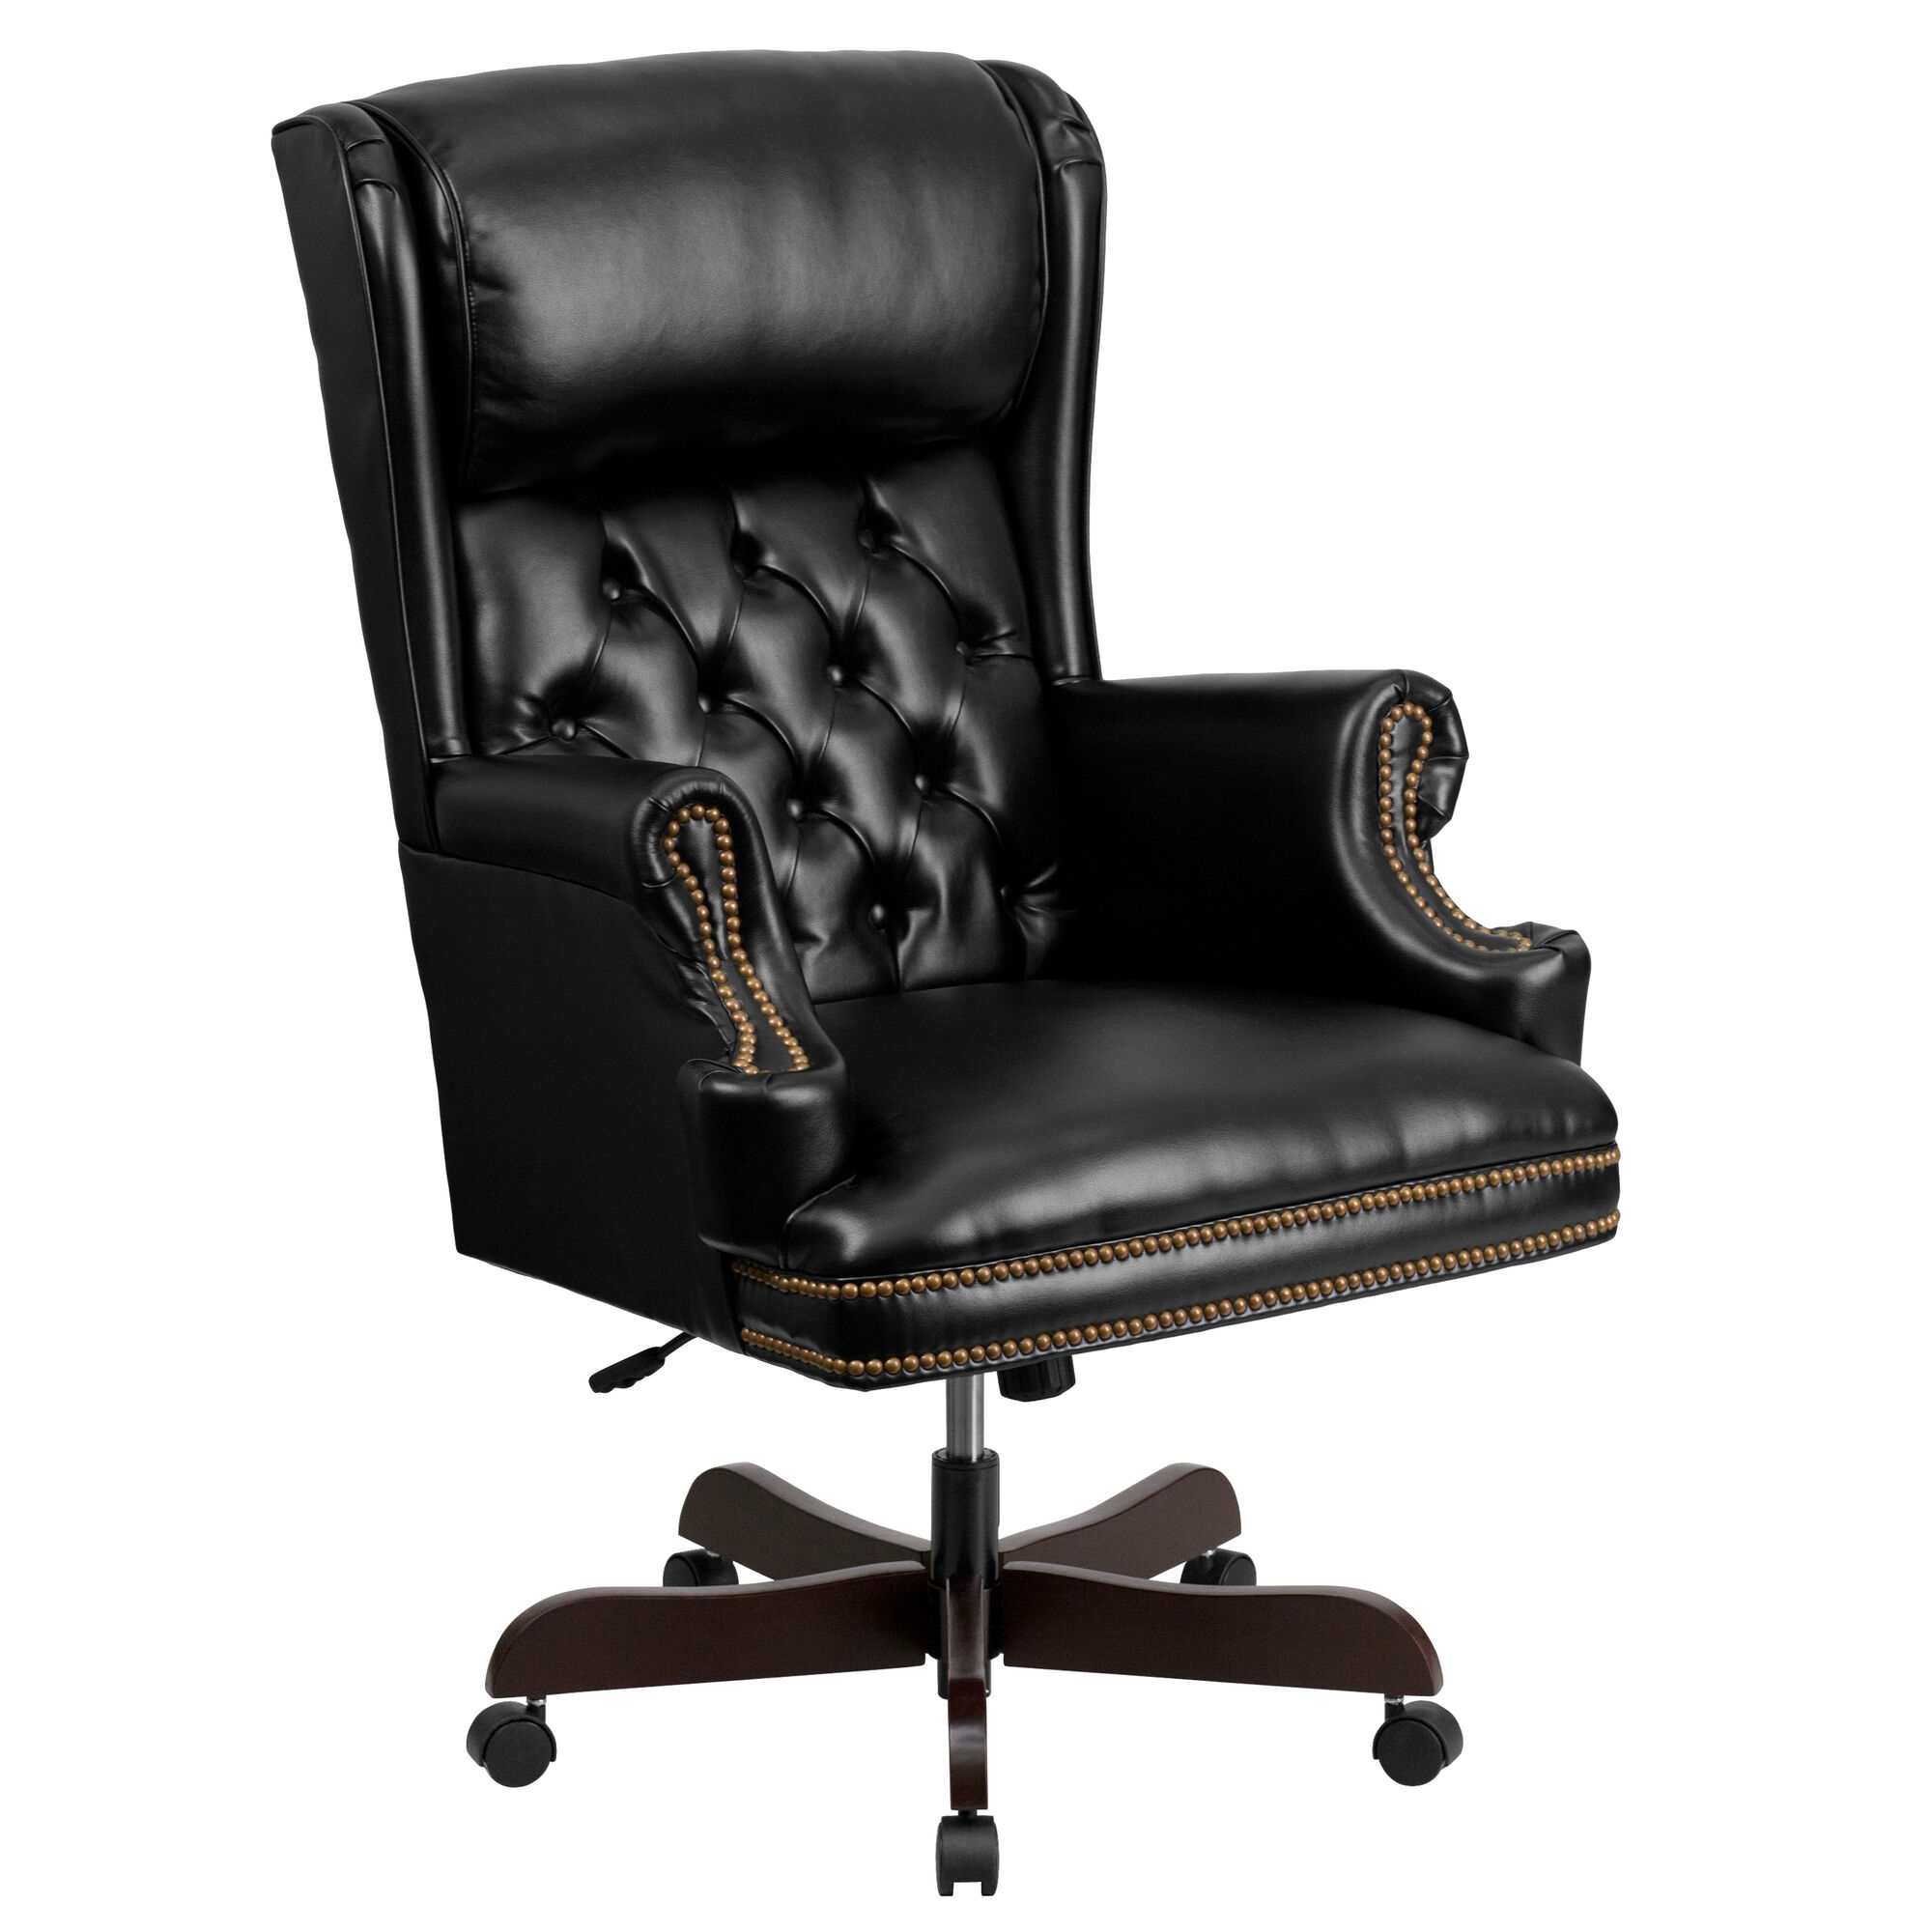 Tremendous High Back Traditional Tufted Black Leather Executive Ergonomic Office Chair With Oversized Headrest Nail Trim Arms Inzonedesignstudio Interior Chair Design Inzonedesignstudiocom